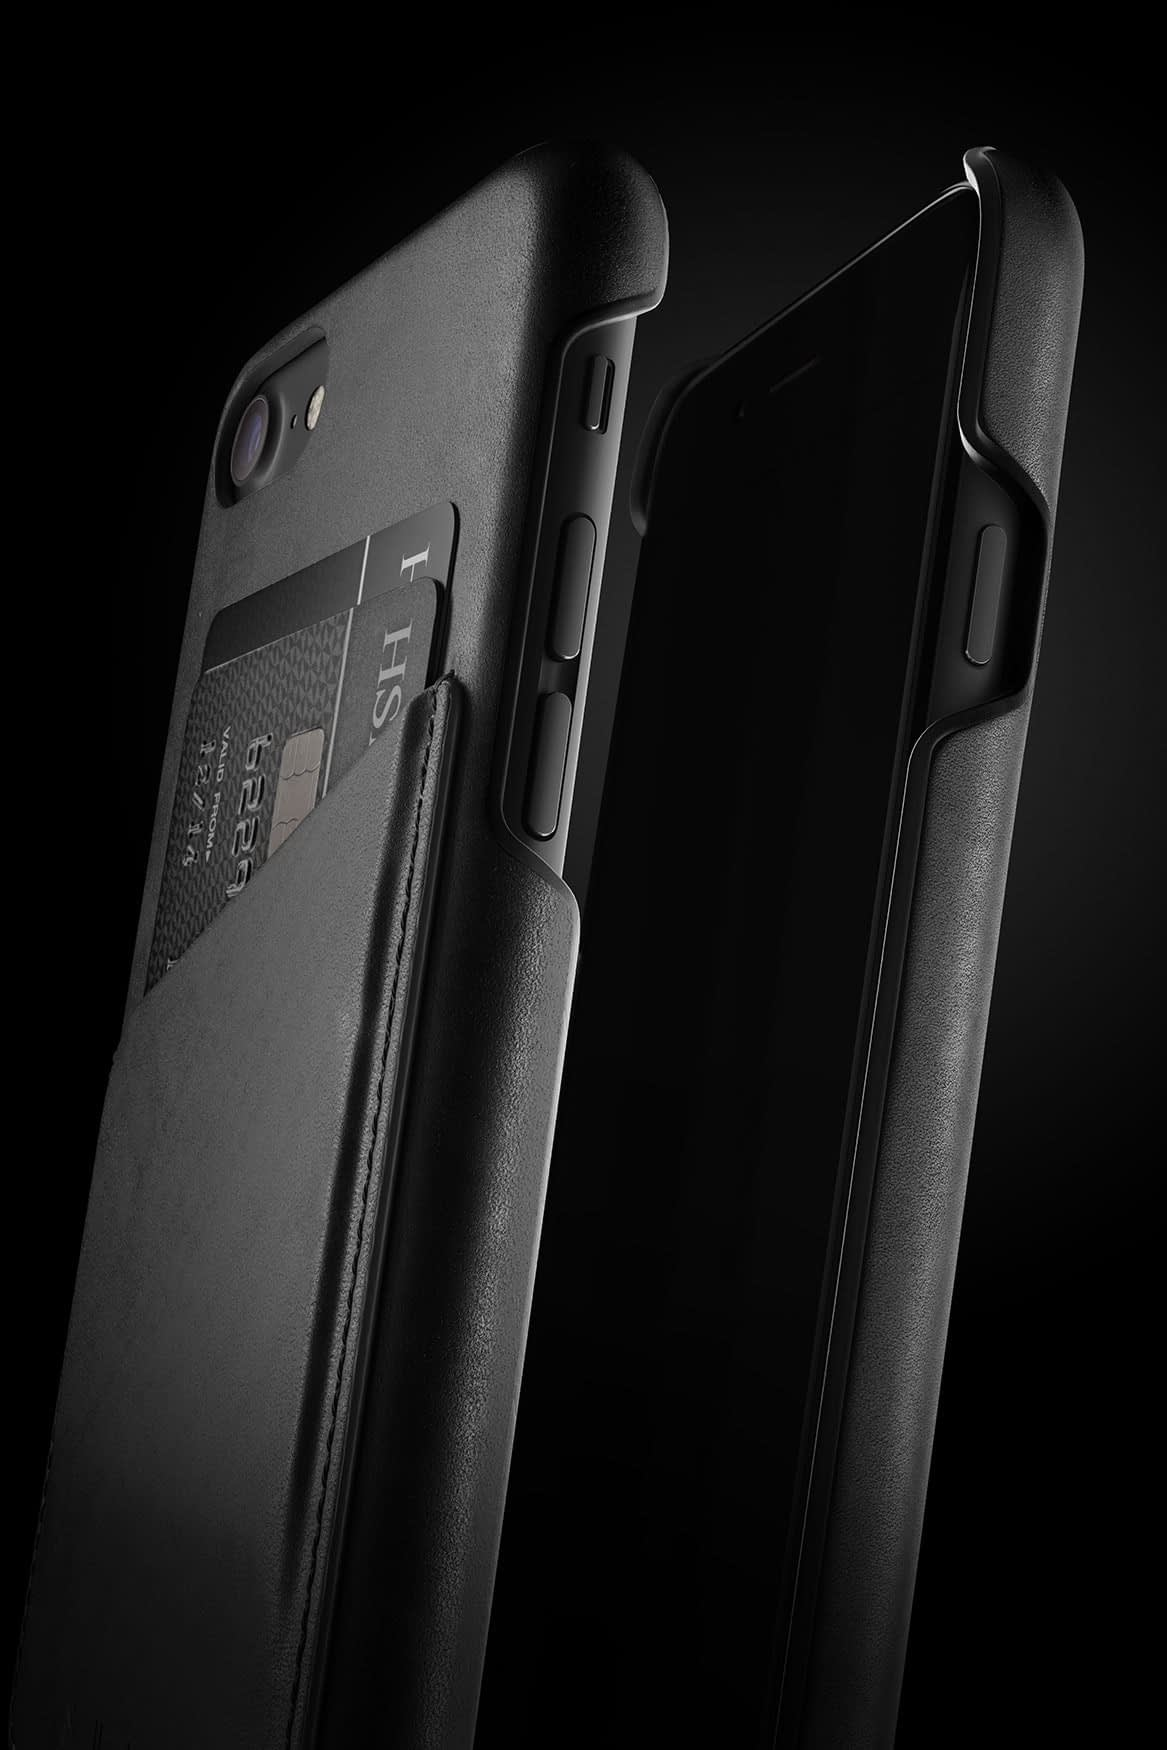 Leather Wallet Case for iPhone 7 Black 007